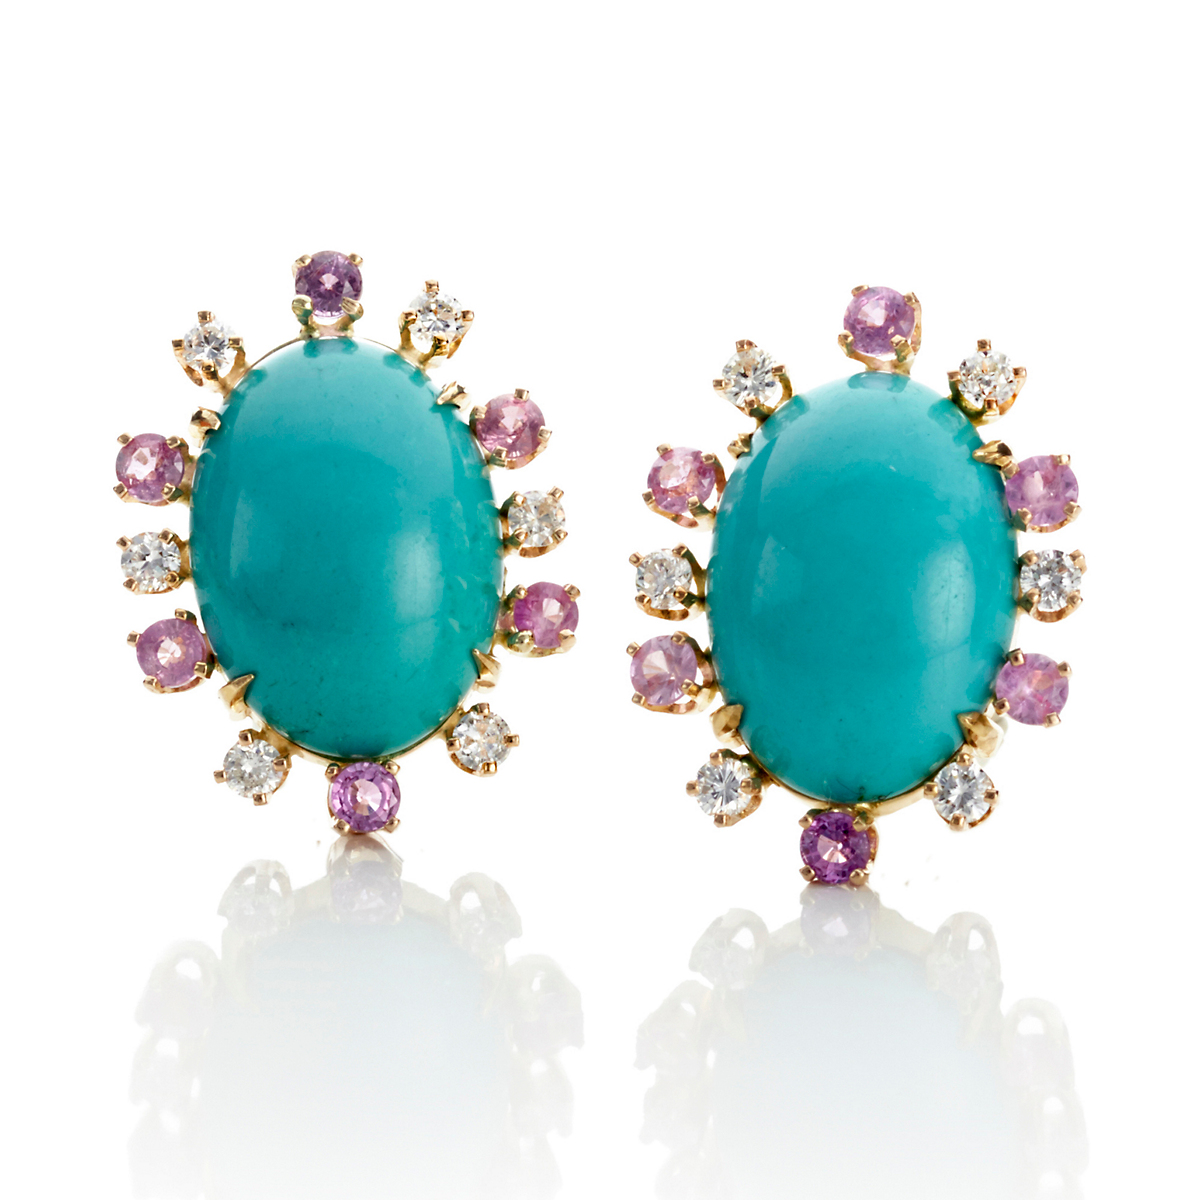 Russell Trusso Turquoise, Pink Sapphire & Diamond Earrings